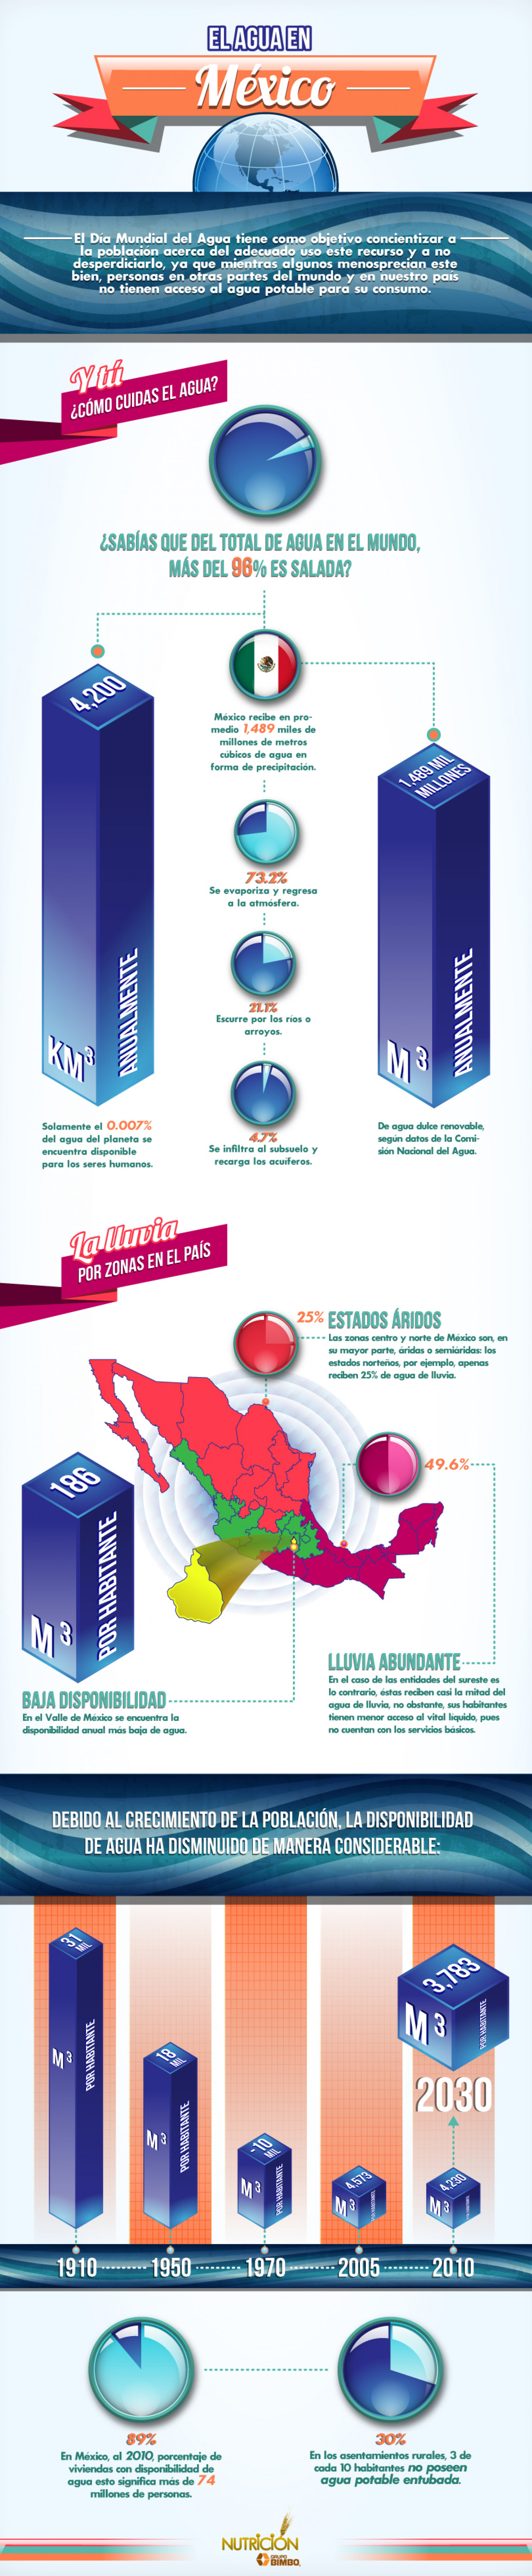 El agua en México / The water in Mexico Infographic